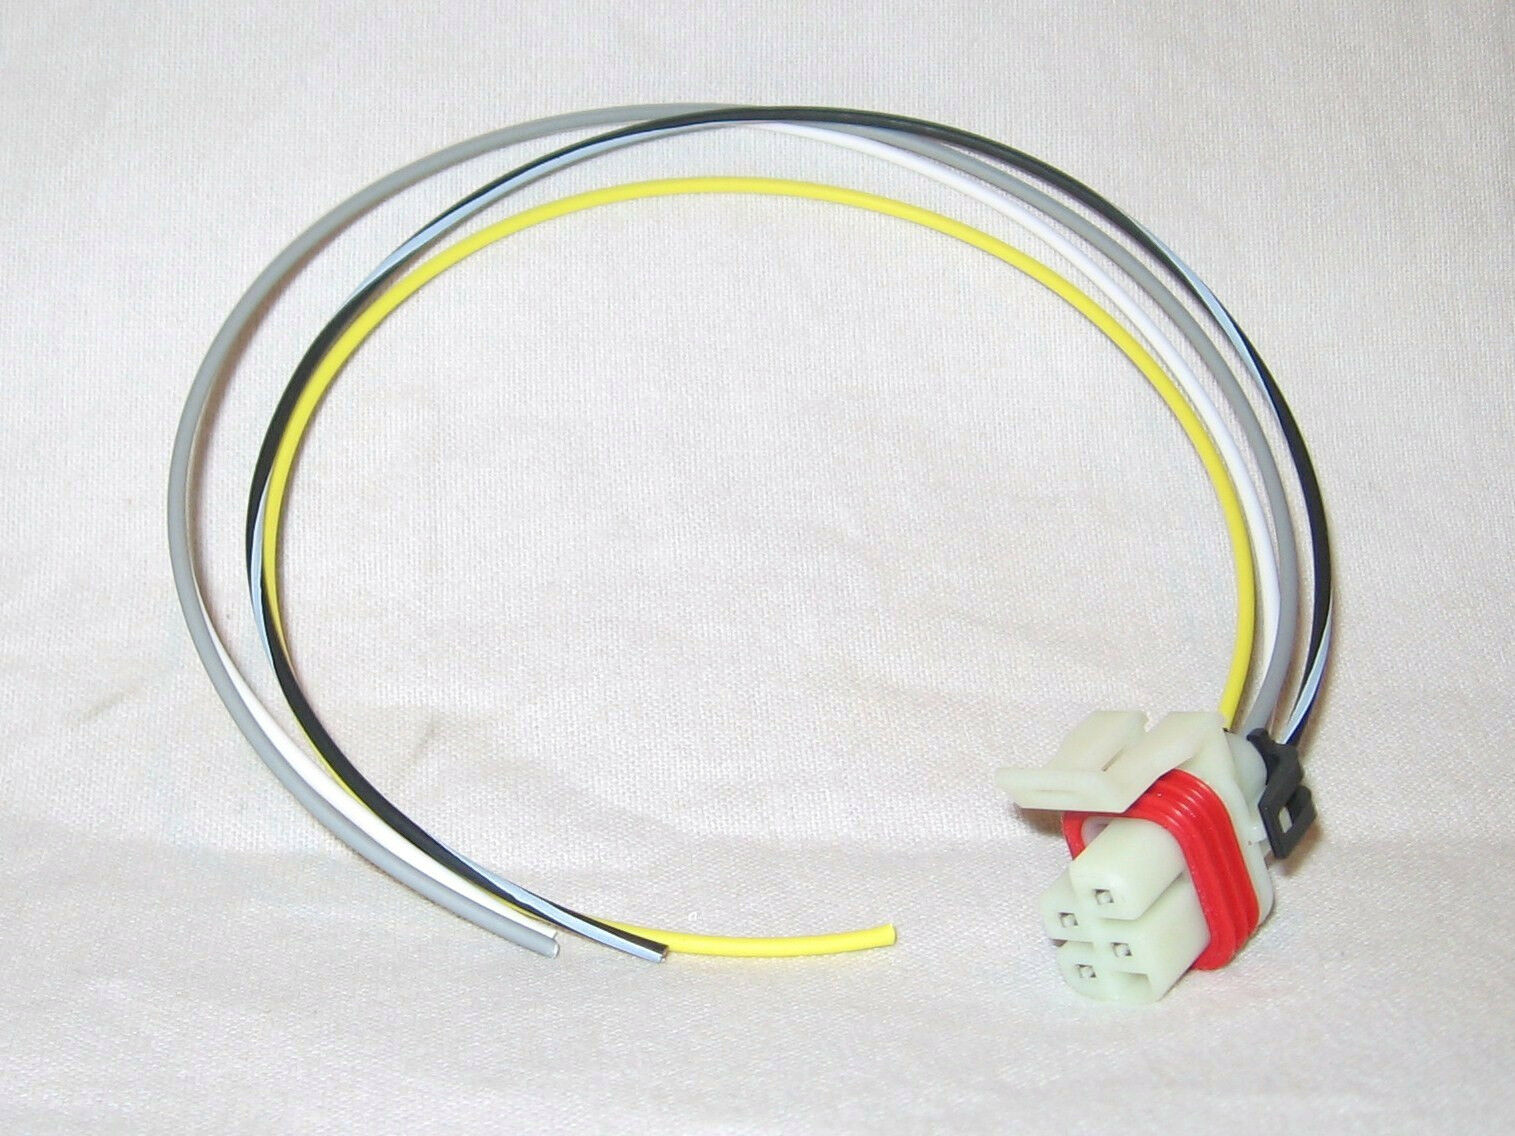 4L60E 4L80E Neutral Safety Switch Connector Pigtail, 4 Wire MLPS ...